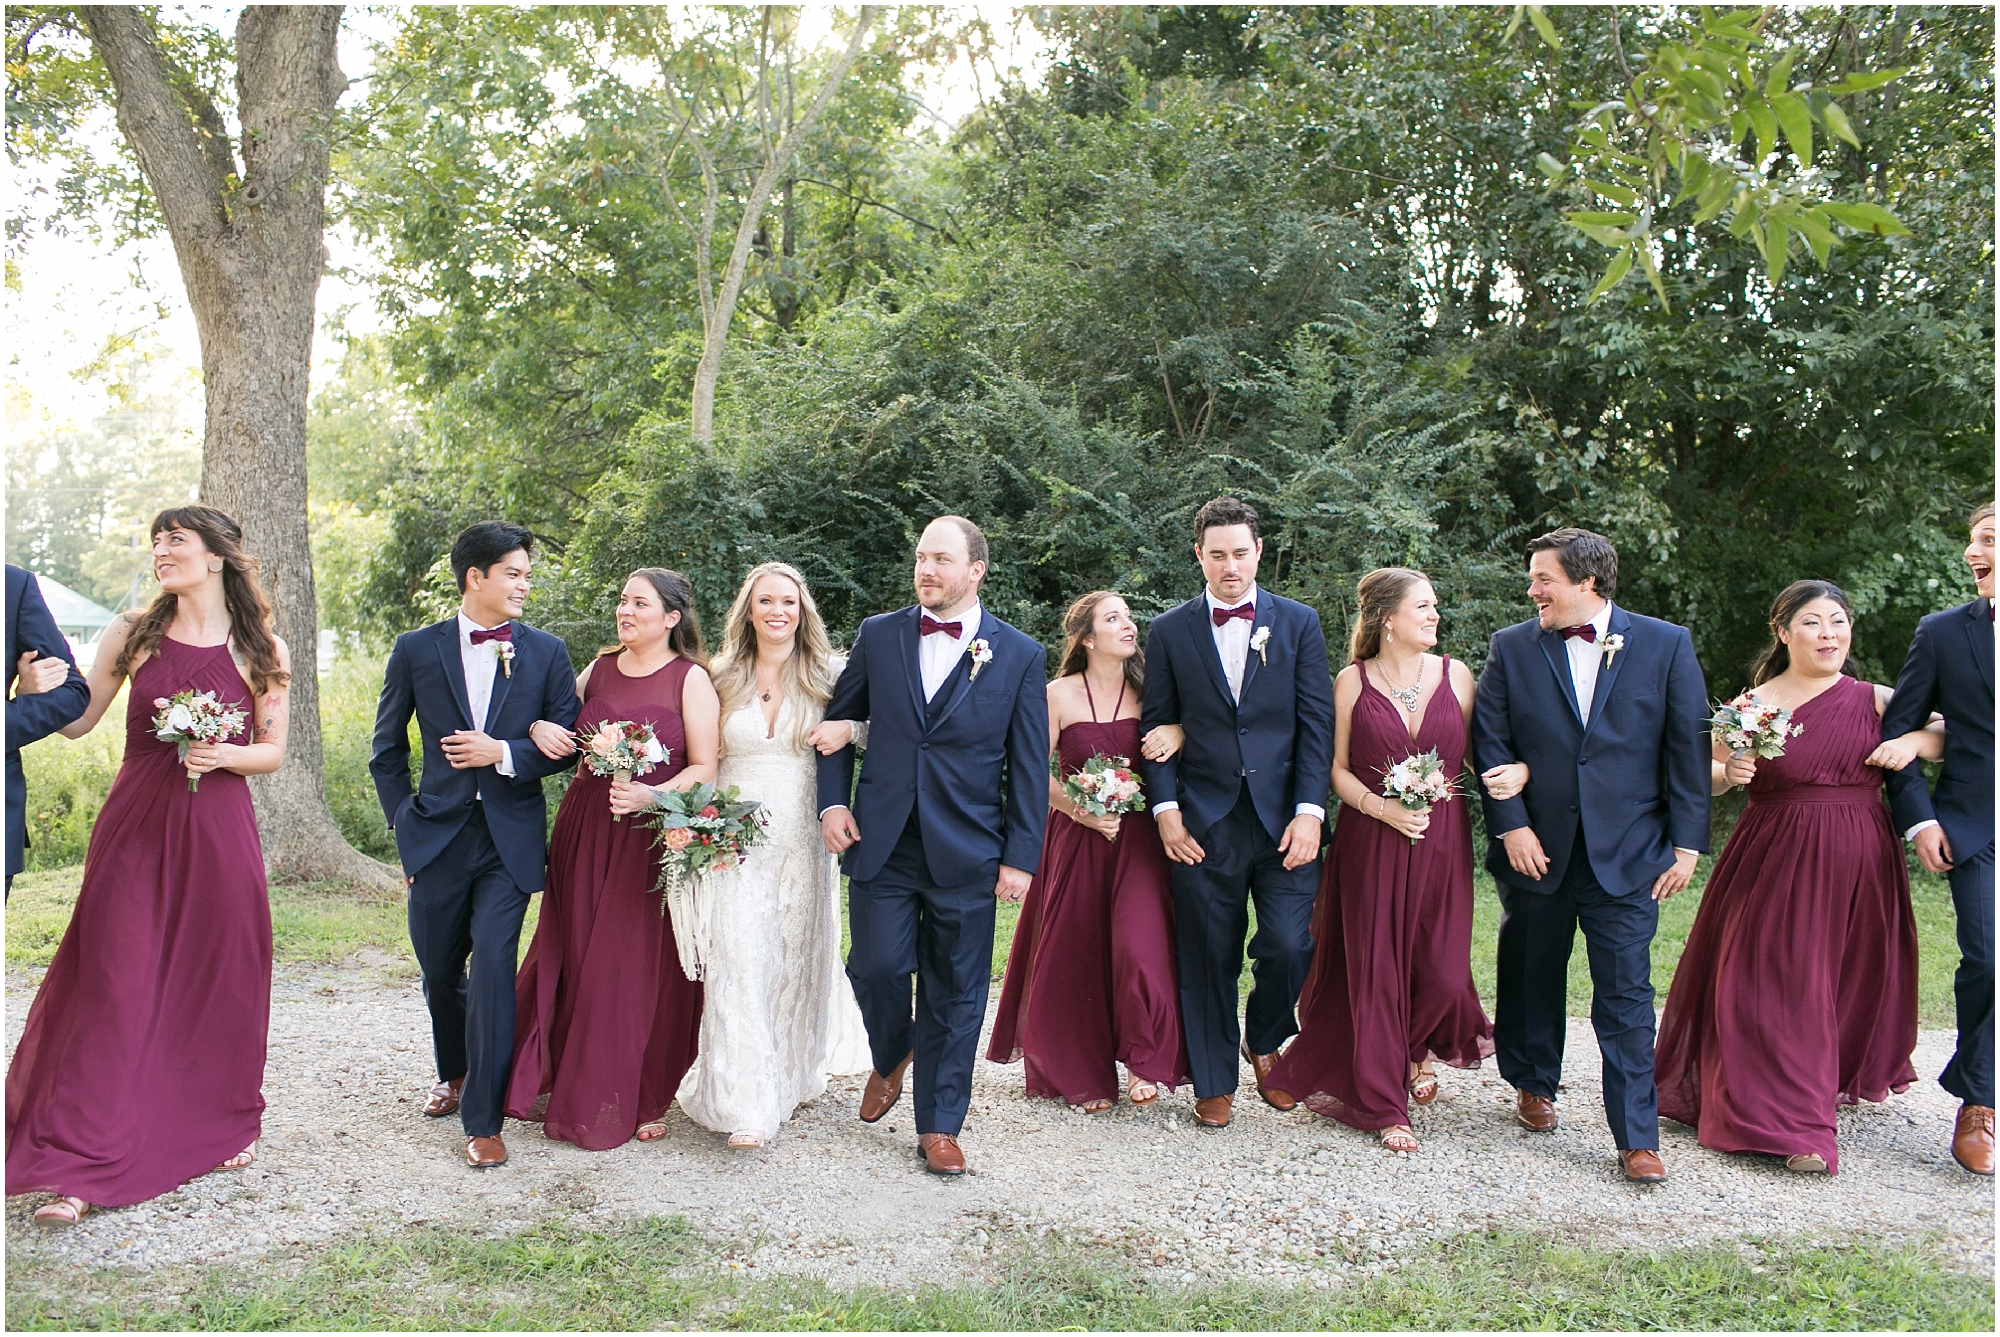 boho bridal party photography on wedding day boho wedding at The Tar Roof virginia beach wedding photography jessica ryan photography